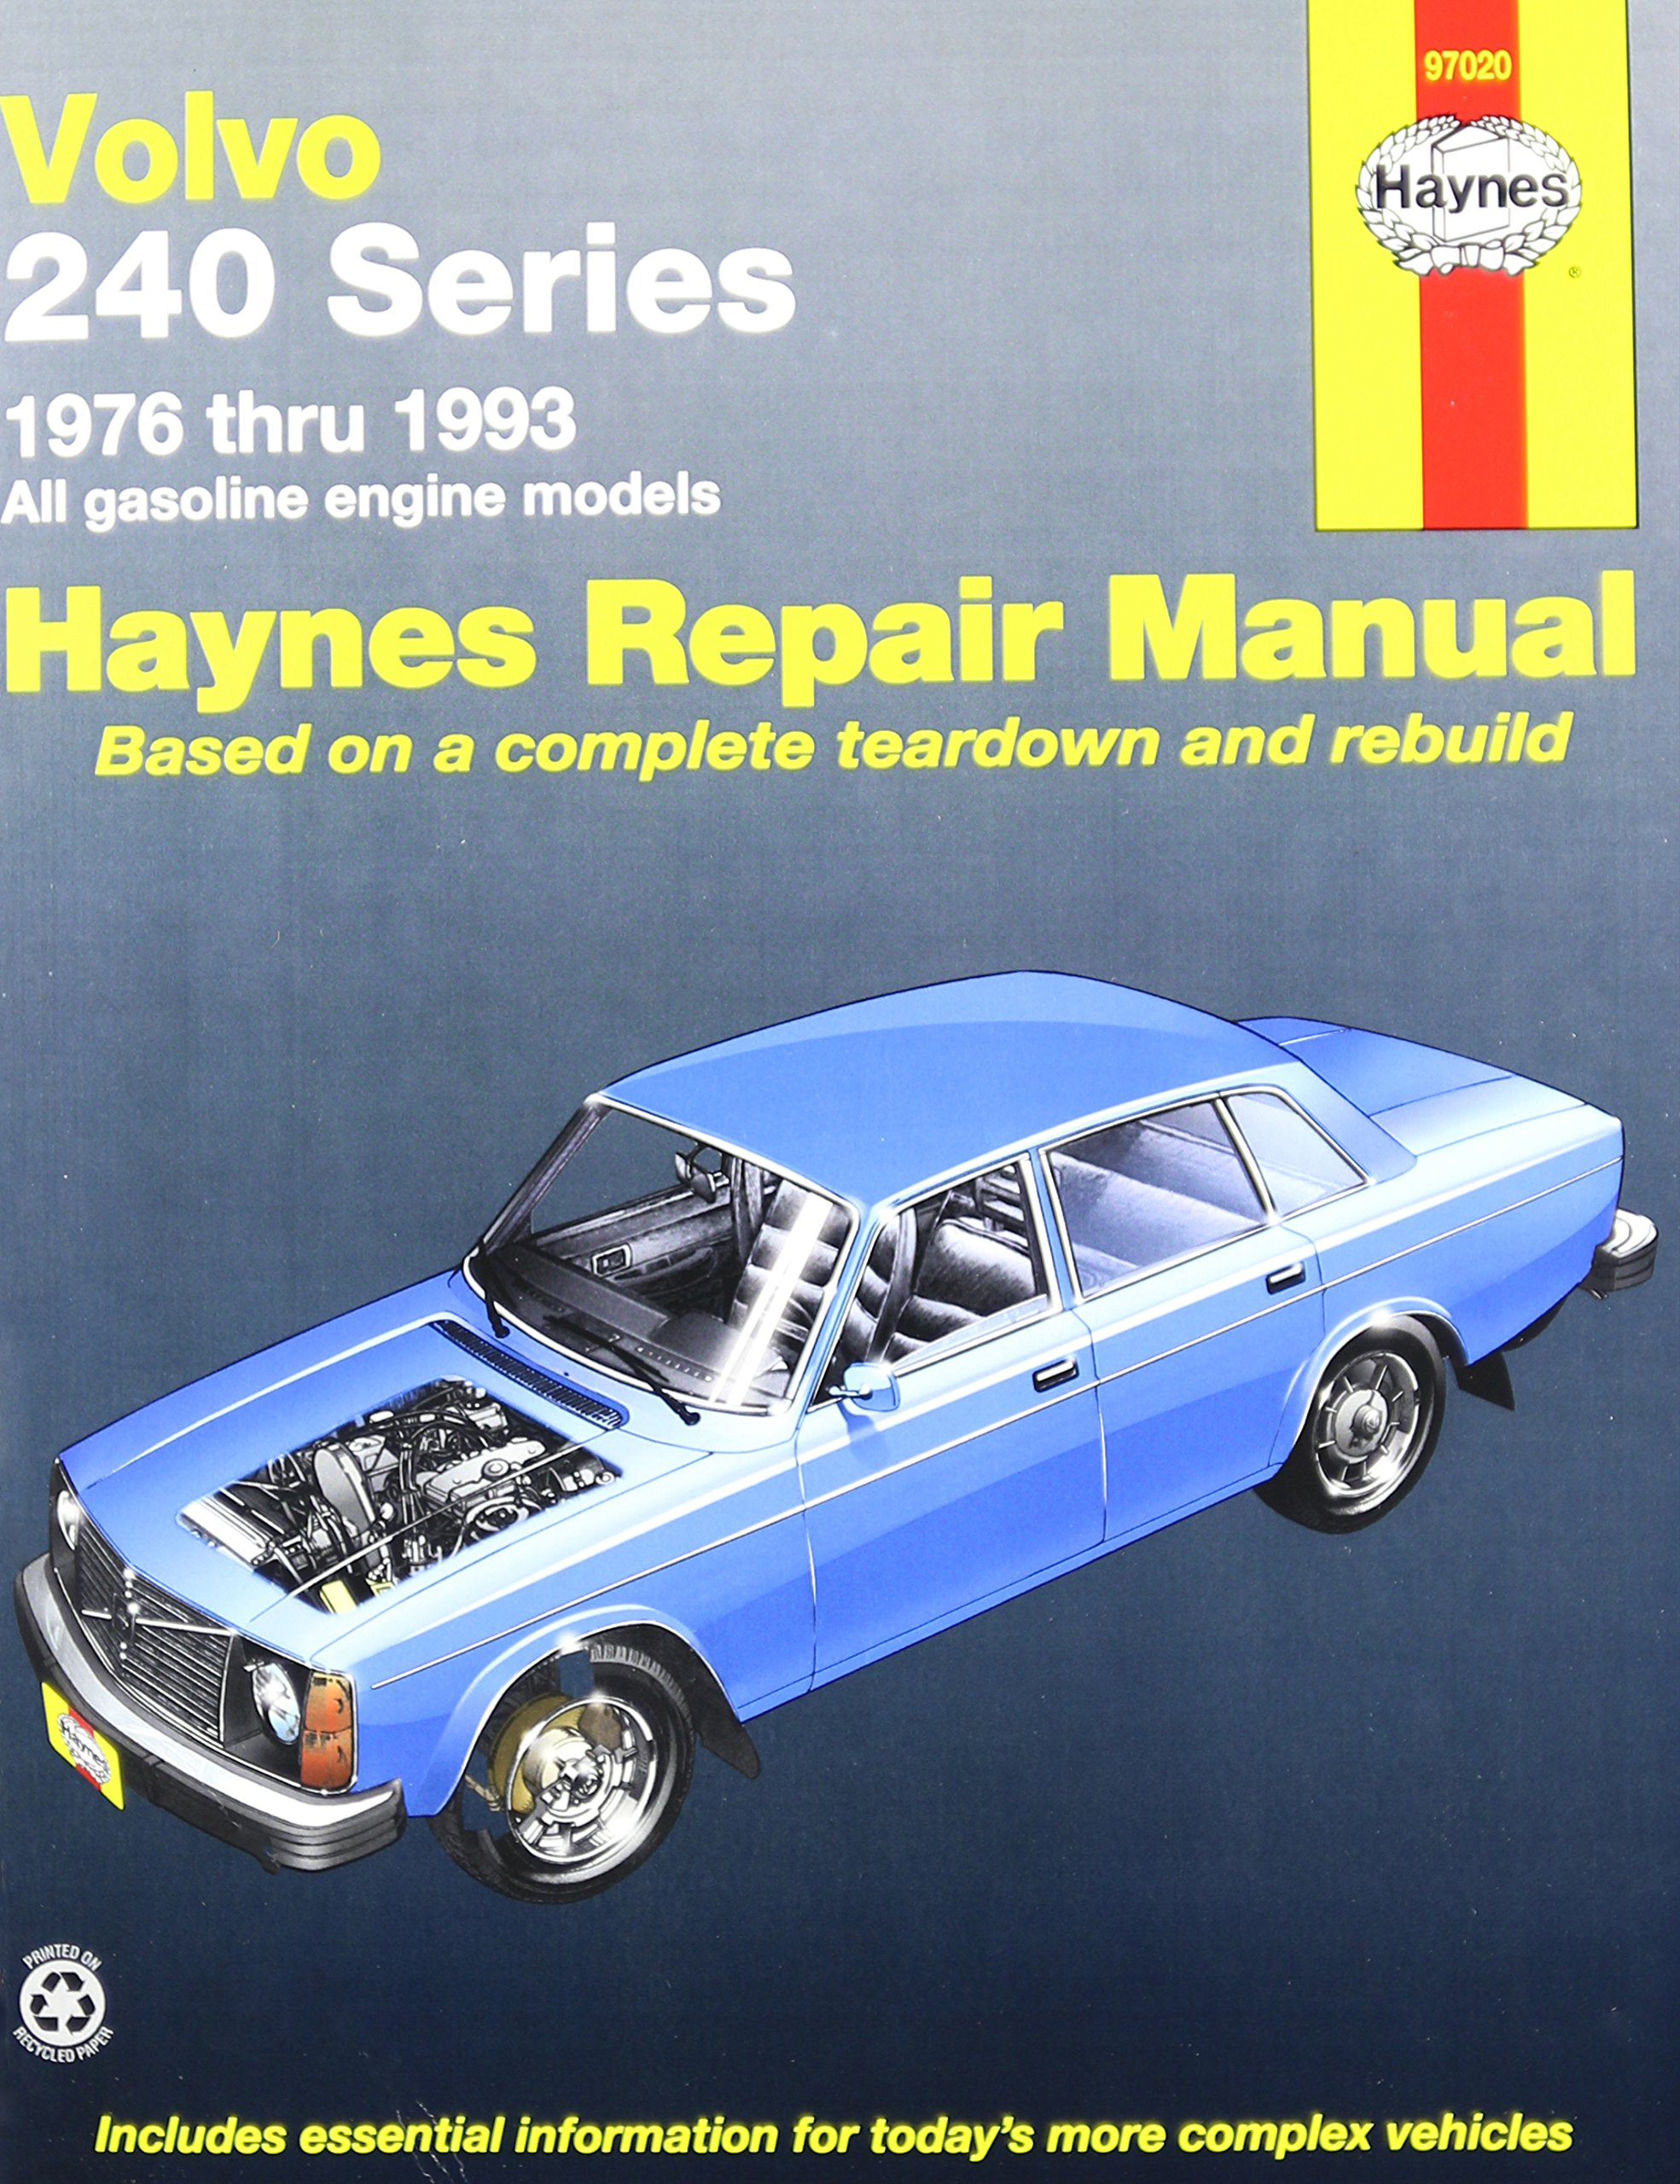 Haynes publications inc 97020 repair manual 0038345002700 haynes publications inc 97020 repair manual 0038345002700 amazon books fandeluxe